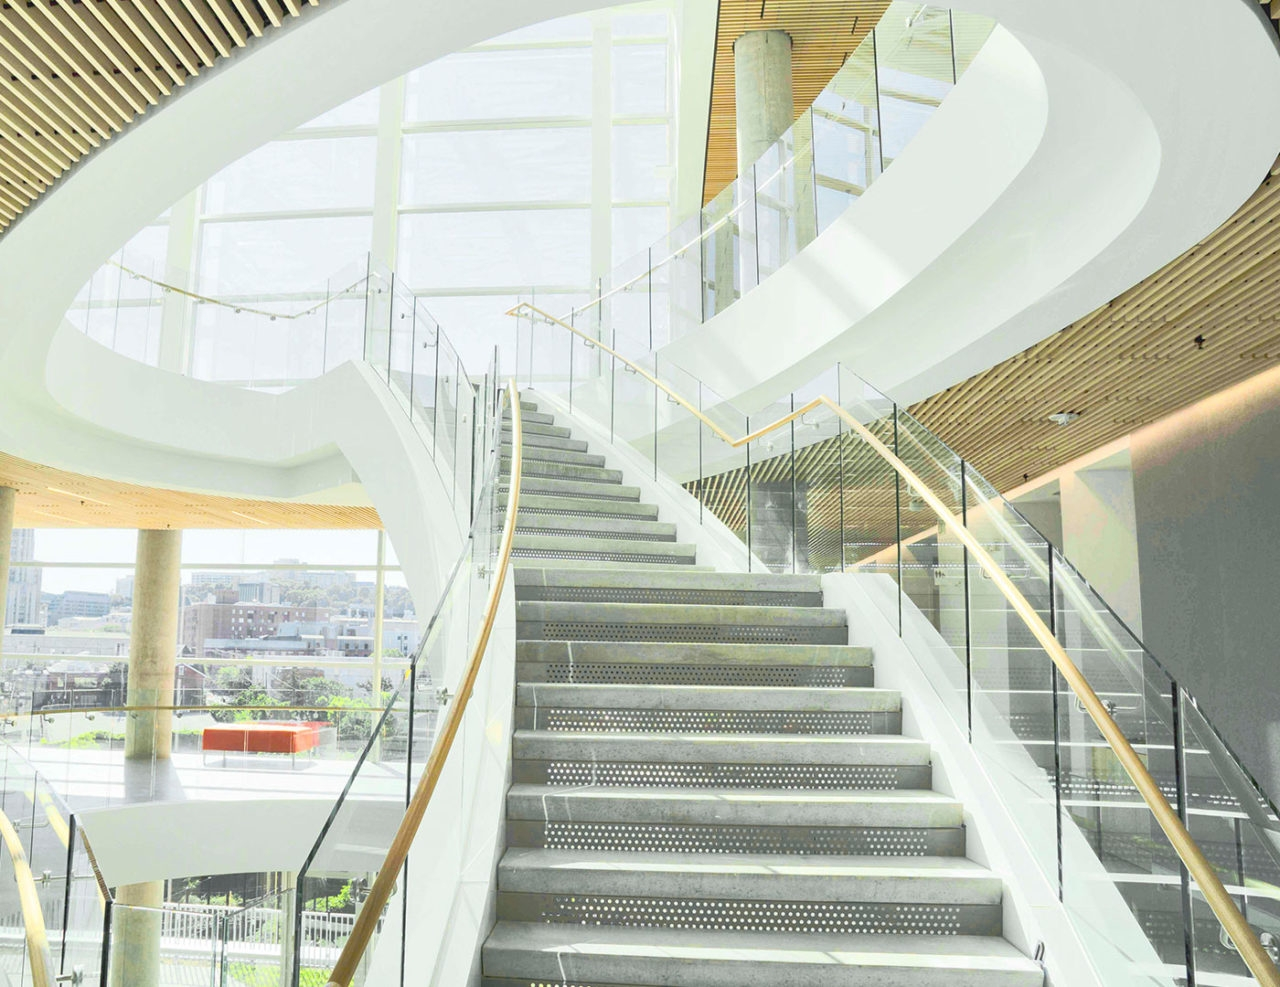 Base Shoe Commercial Glass Railing Trex Commercial Products | Staircase Design For Commercial Buildings | Cylindrical Glass | Enclosed | Beautiful | Central Staircase | Sleek